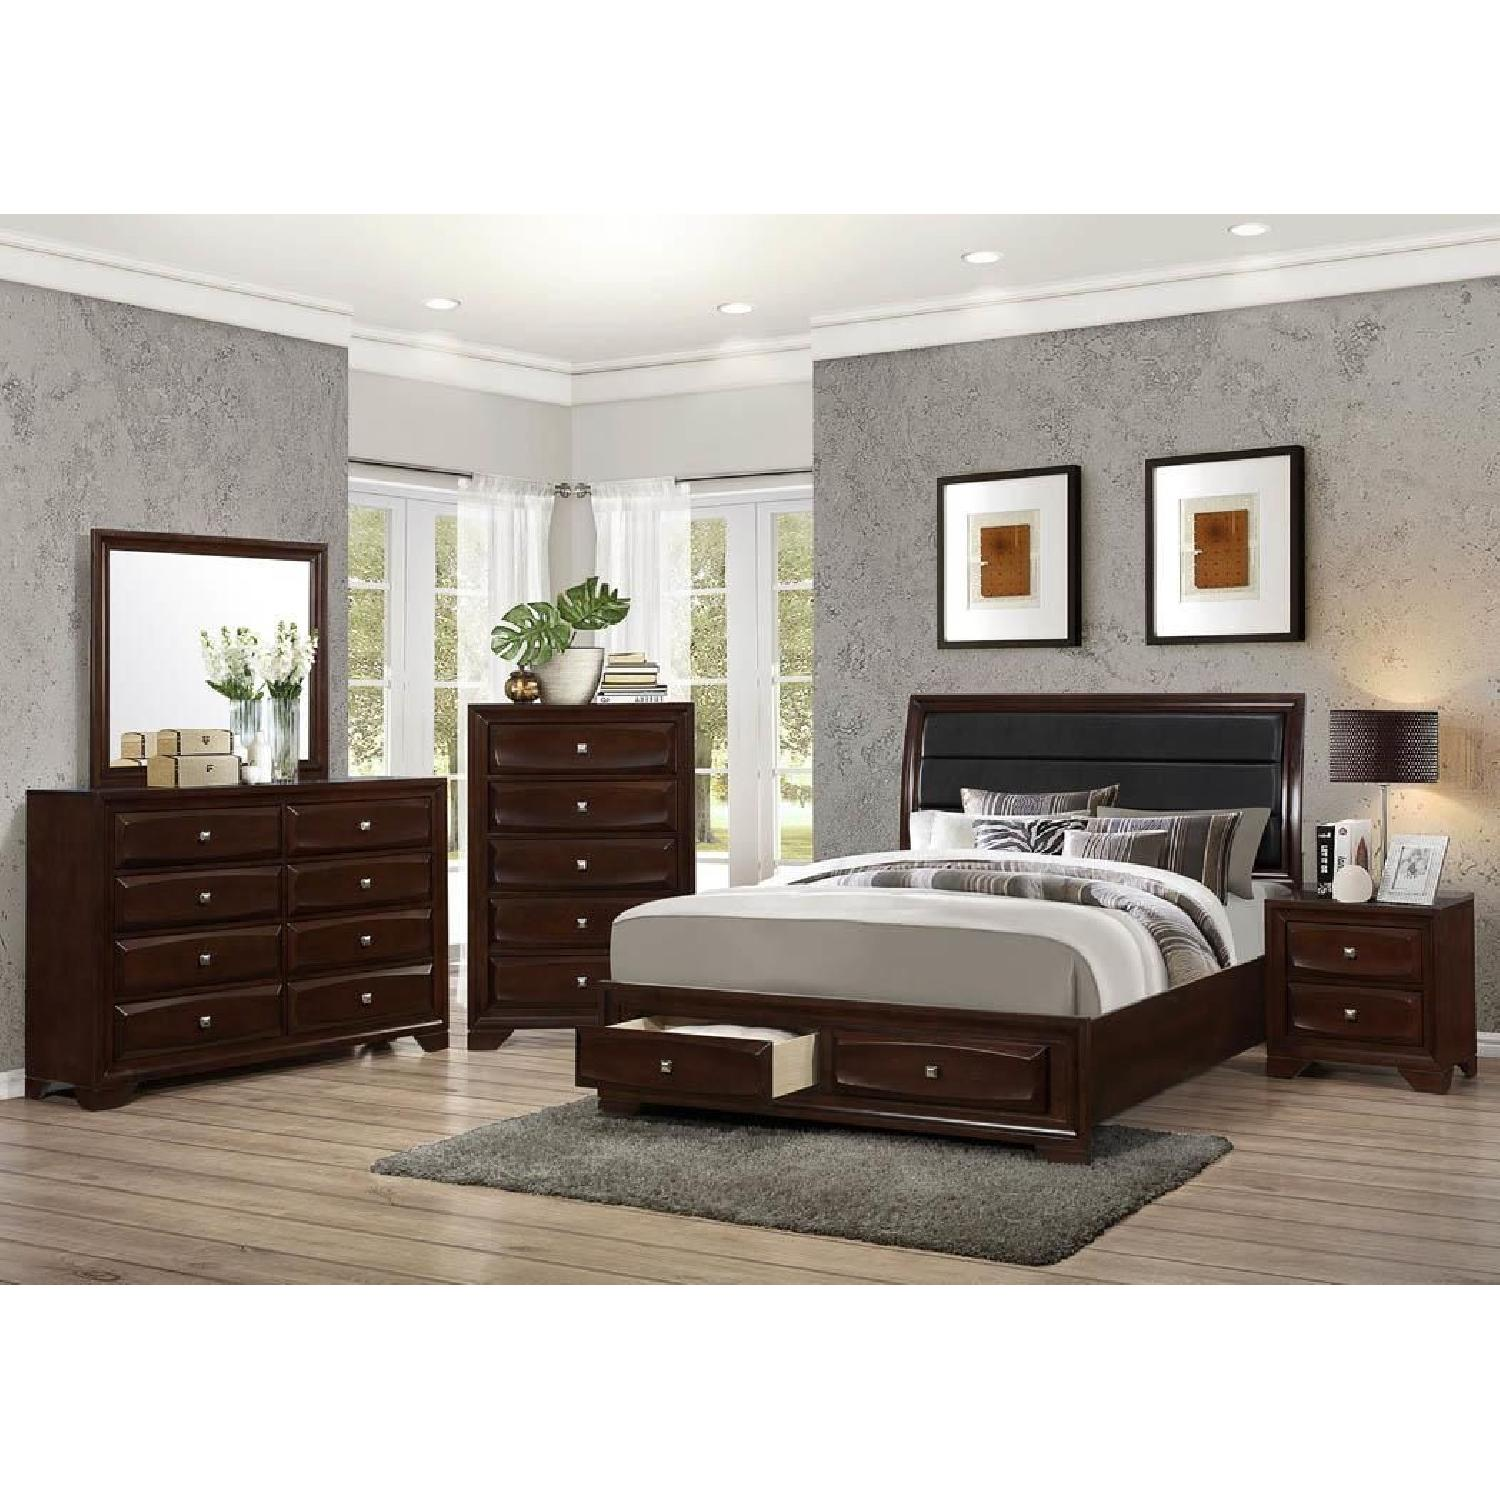 Dresser in Cappuccino w/ Drawer Front Design - image-3